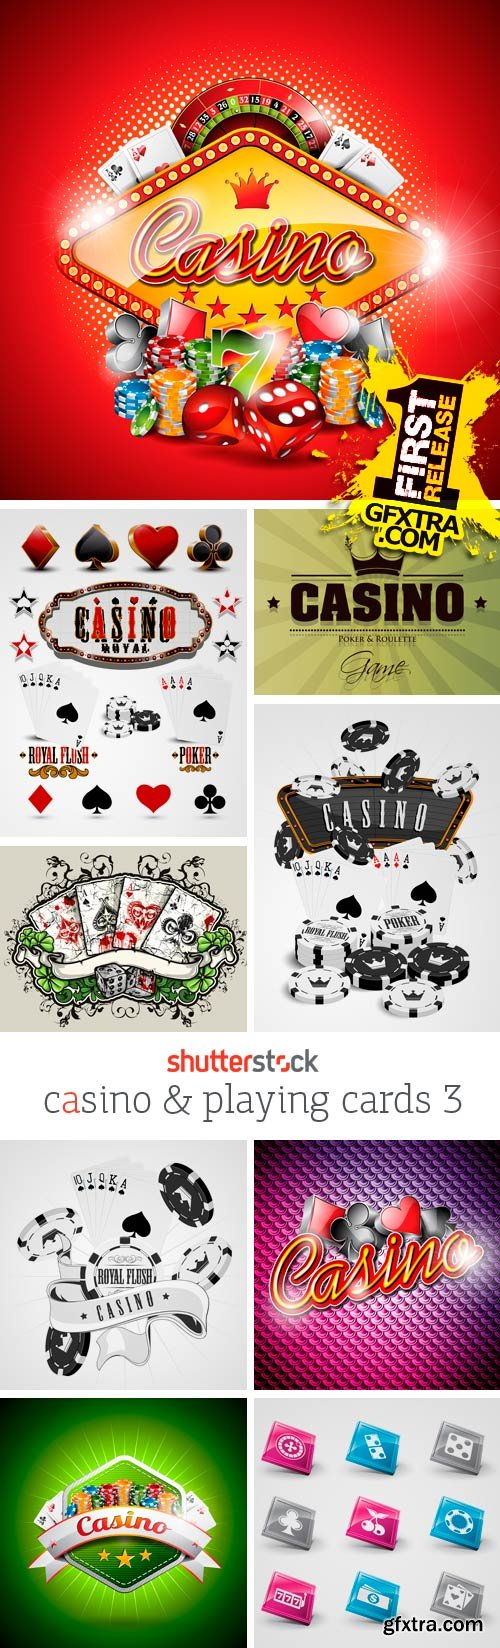 Amazing SS - Casino & Playing Cards 3, 25xEPS